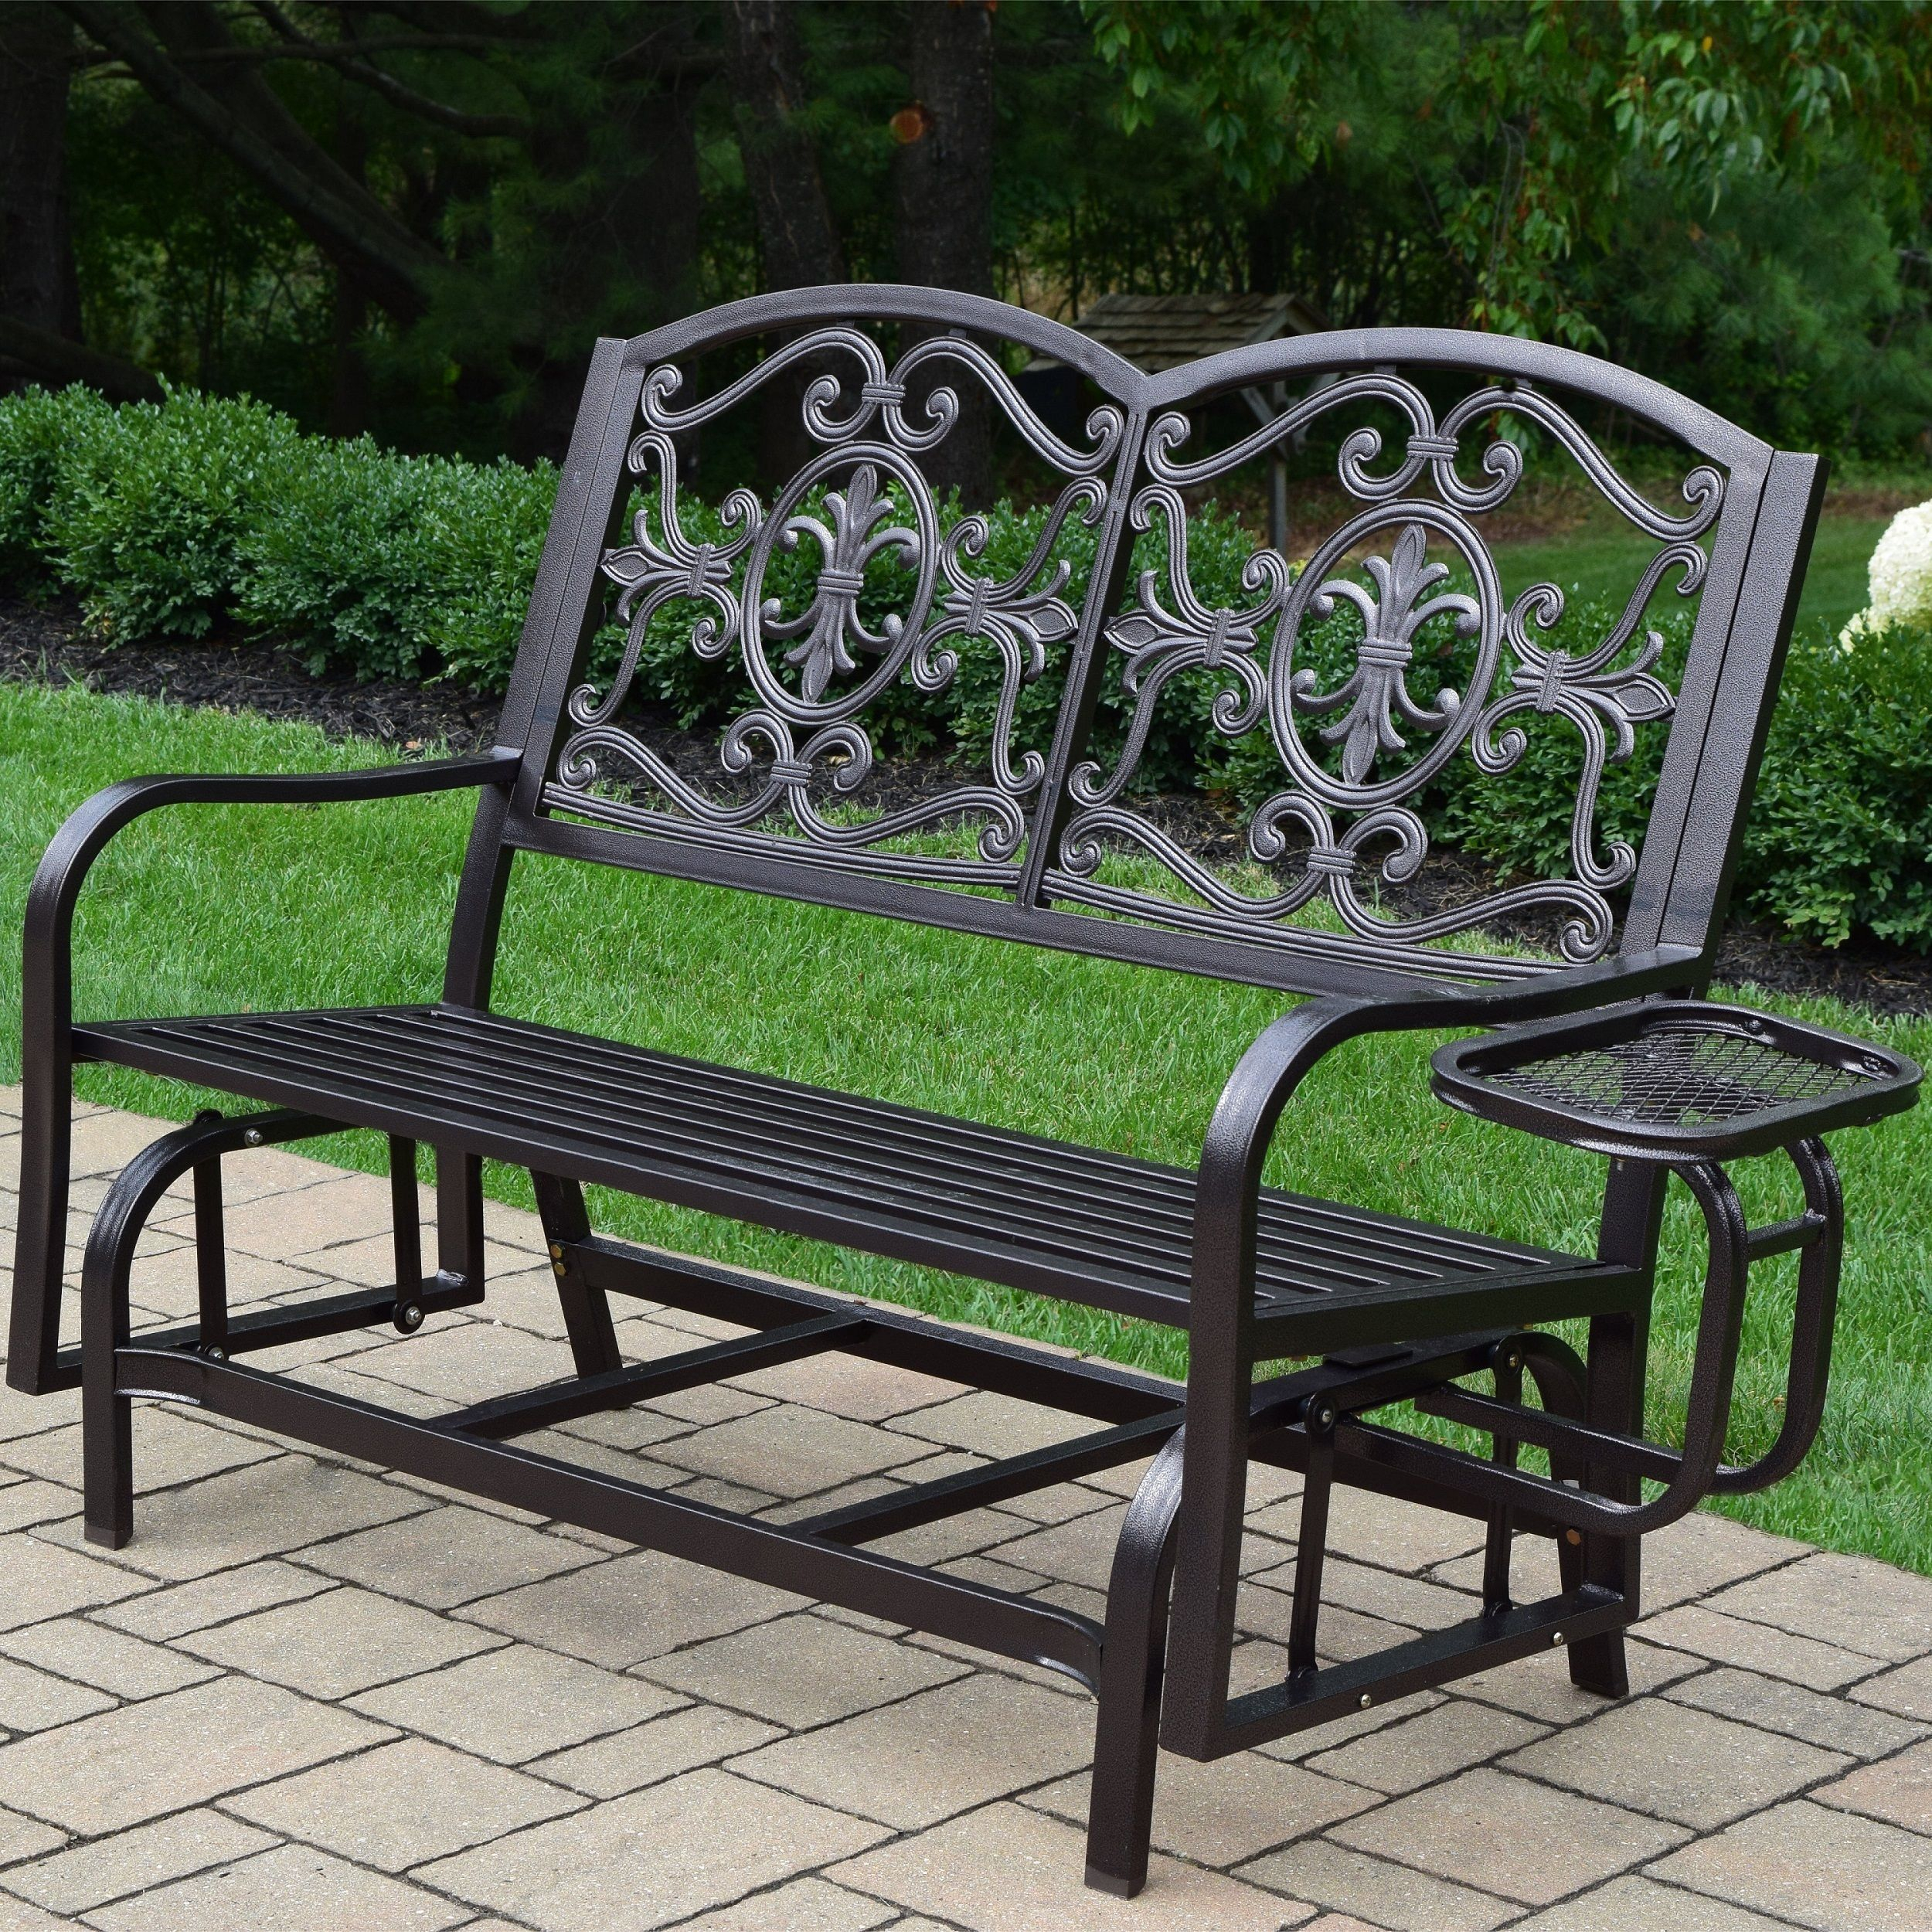 Online Shopping – Bedding, Furniture, Electronics, Jewelry For Aluminum Outdoor Double Glider Benches (View 15 of 25)